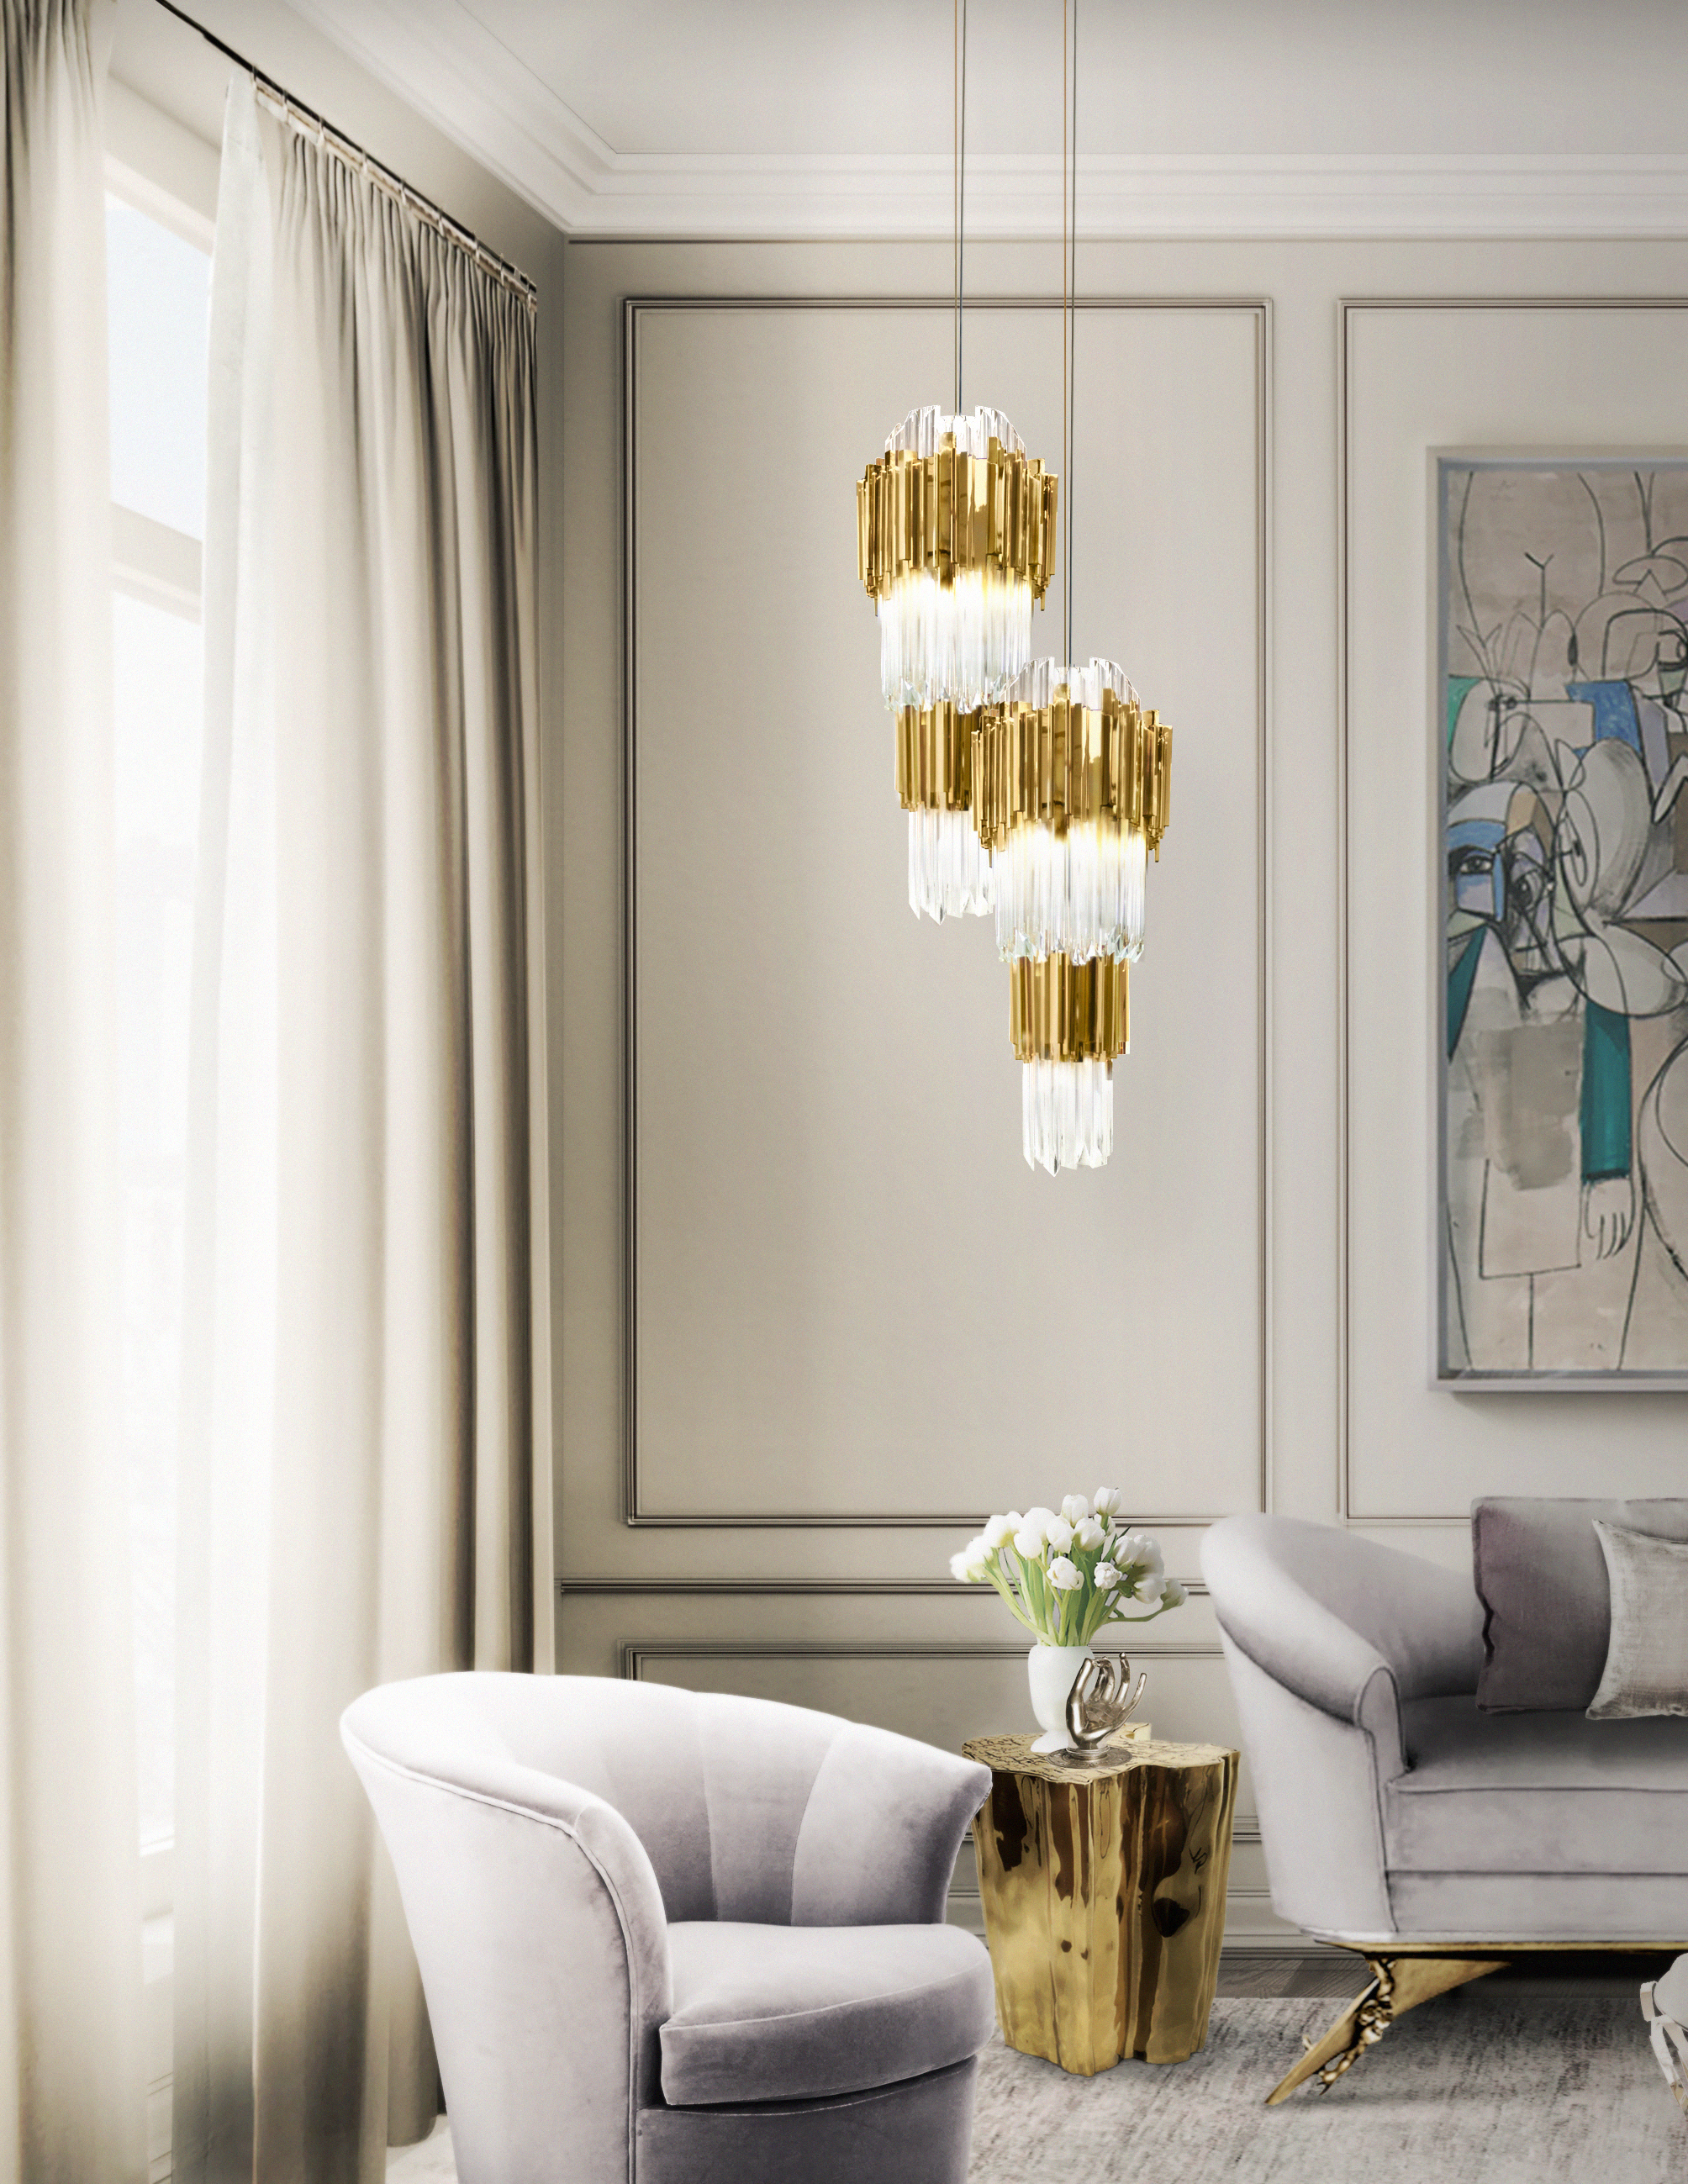 Living Room Design Ideas For a Luxurious Interior Design Project living room ideas Living Room Ideas For a Luxurious Interior Design Project Living Room Ideas For a Luxurious Interior Design Project 20